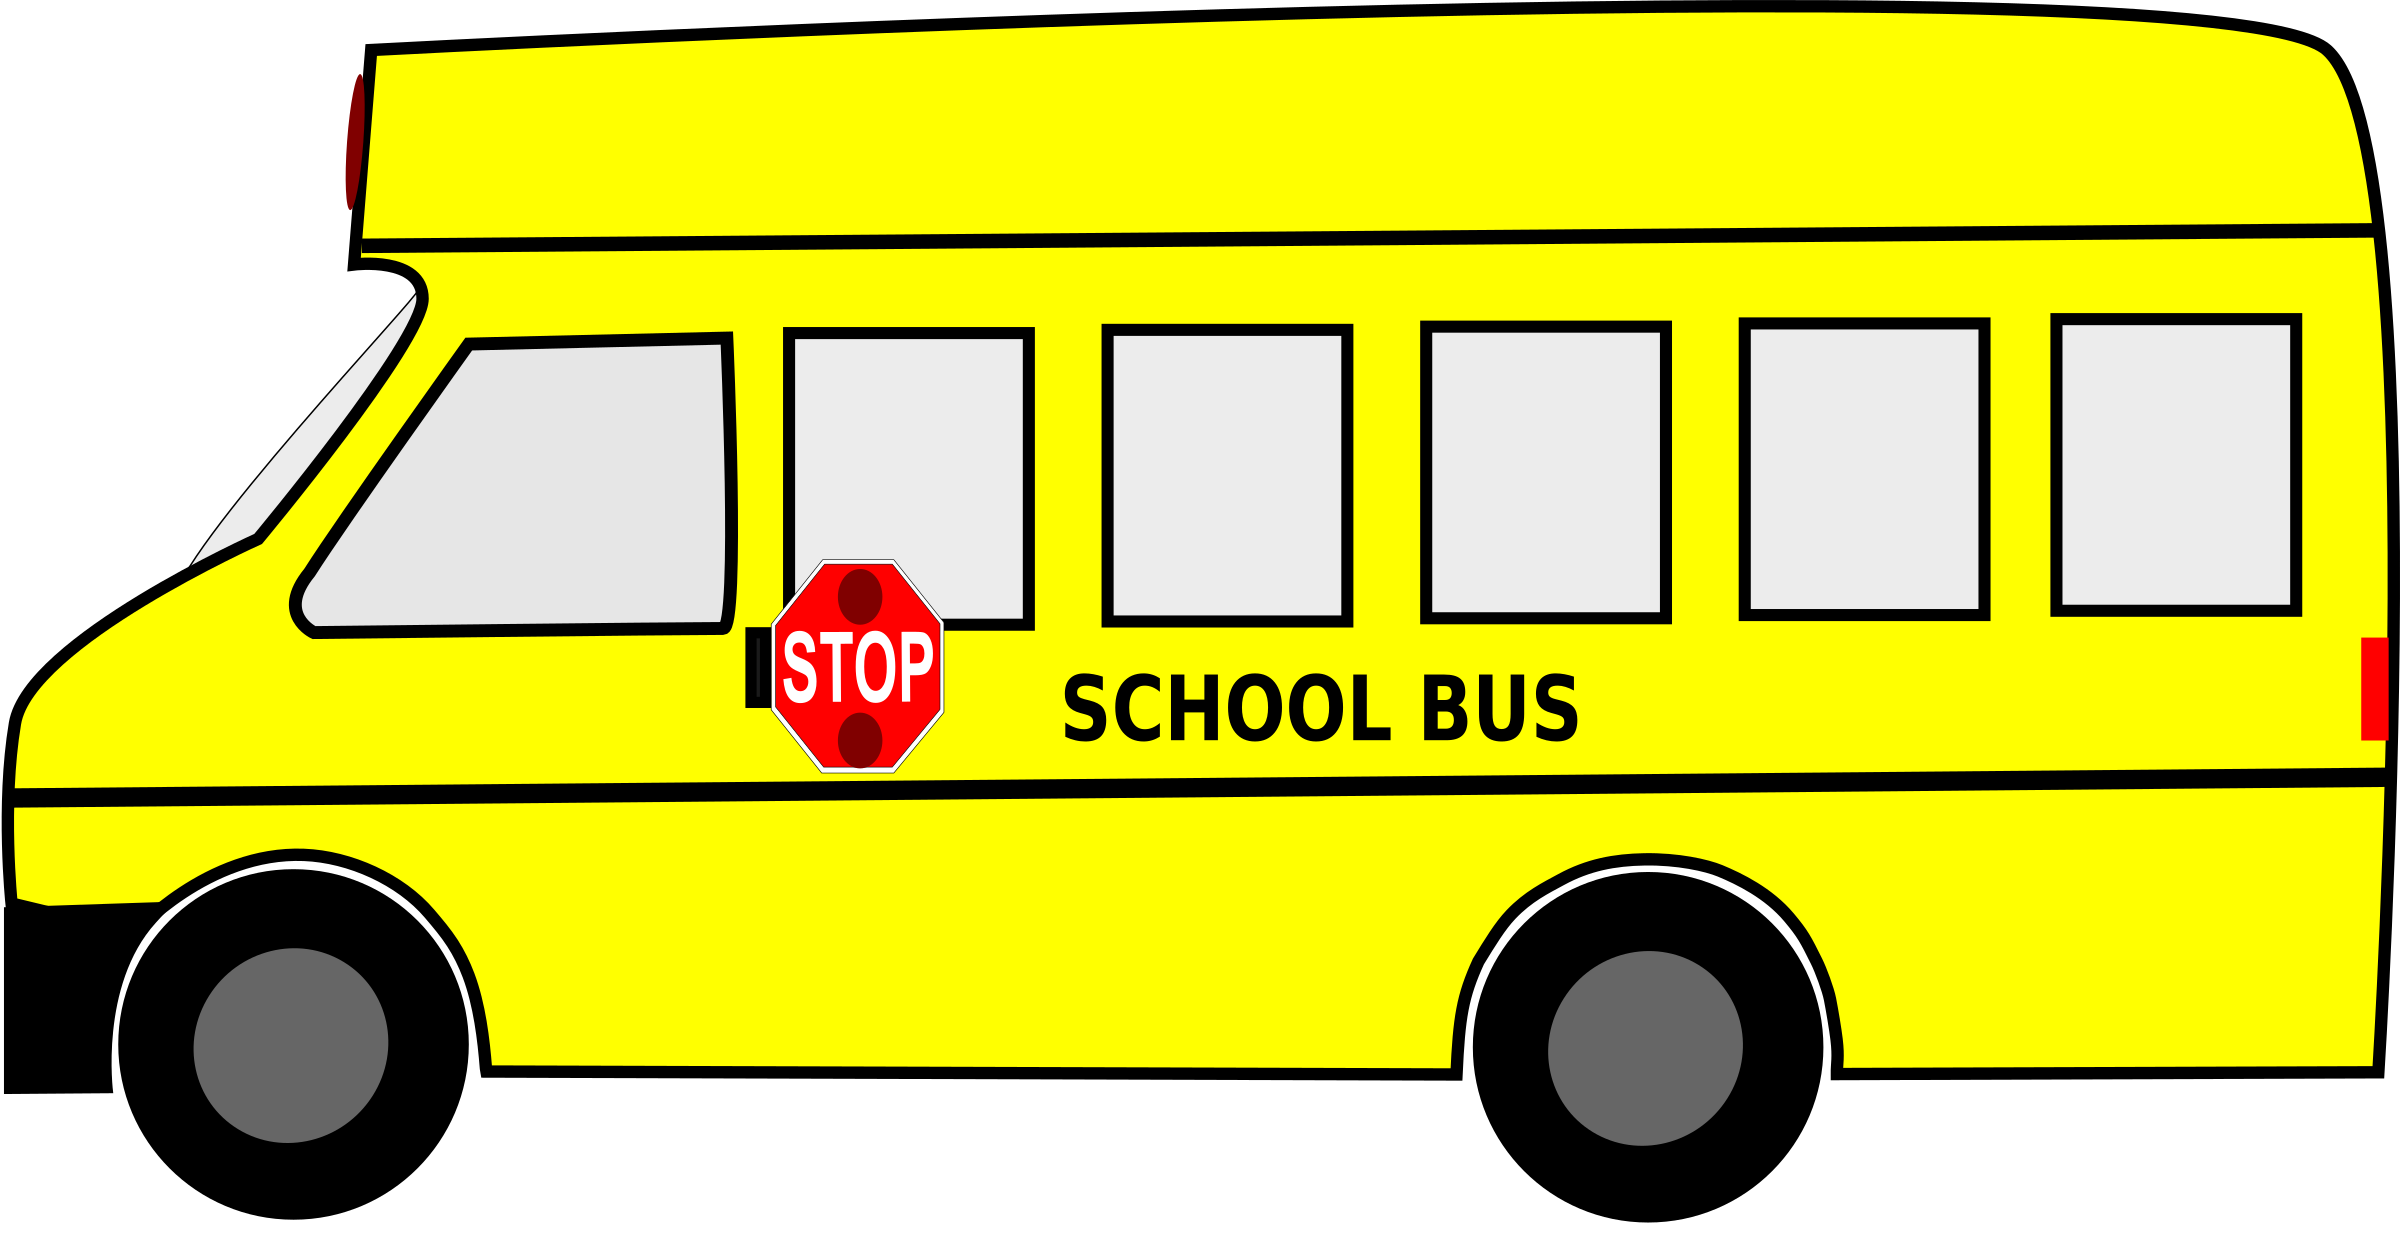 School cartoon clipart graphic library stock Clipart - Moving School Bus Animated SVG Clipart Free Download graphic library stock